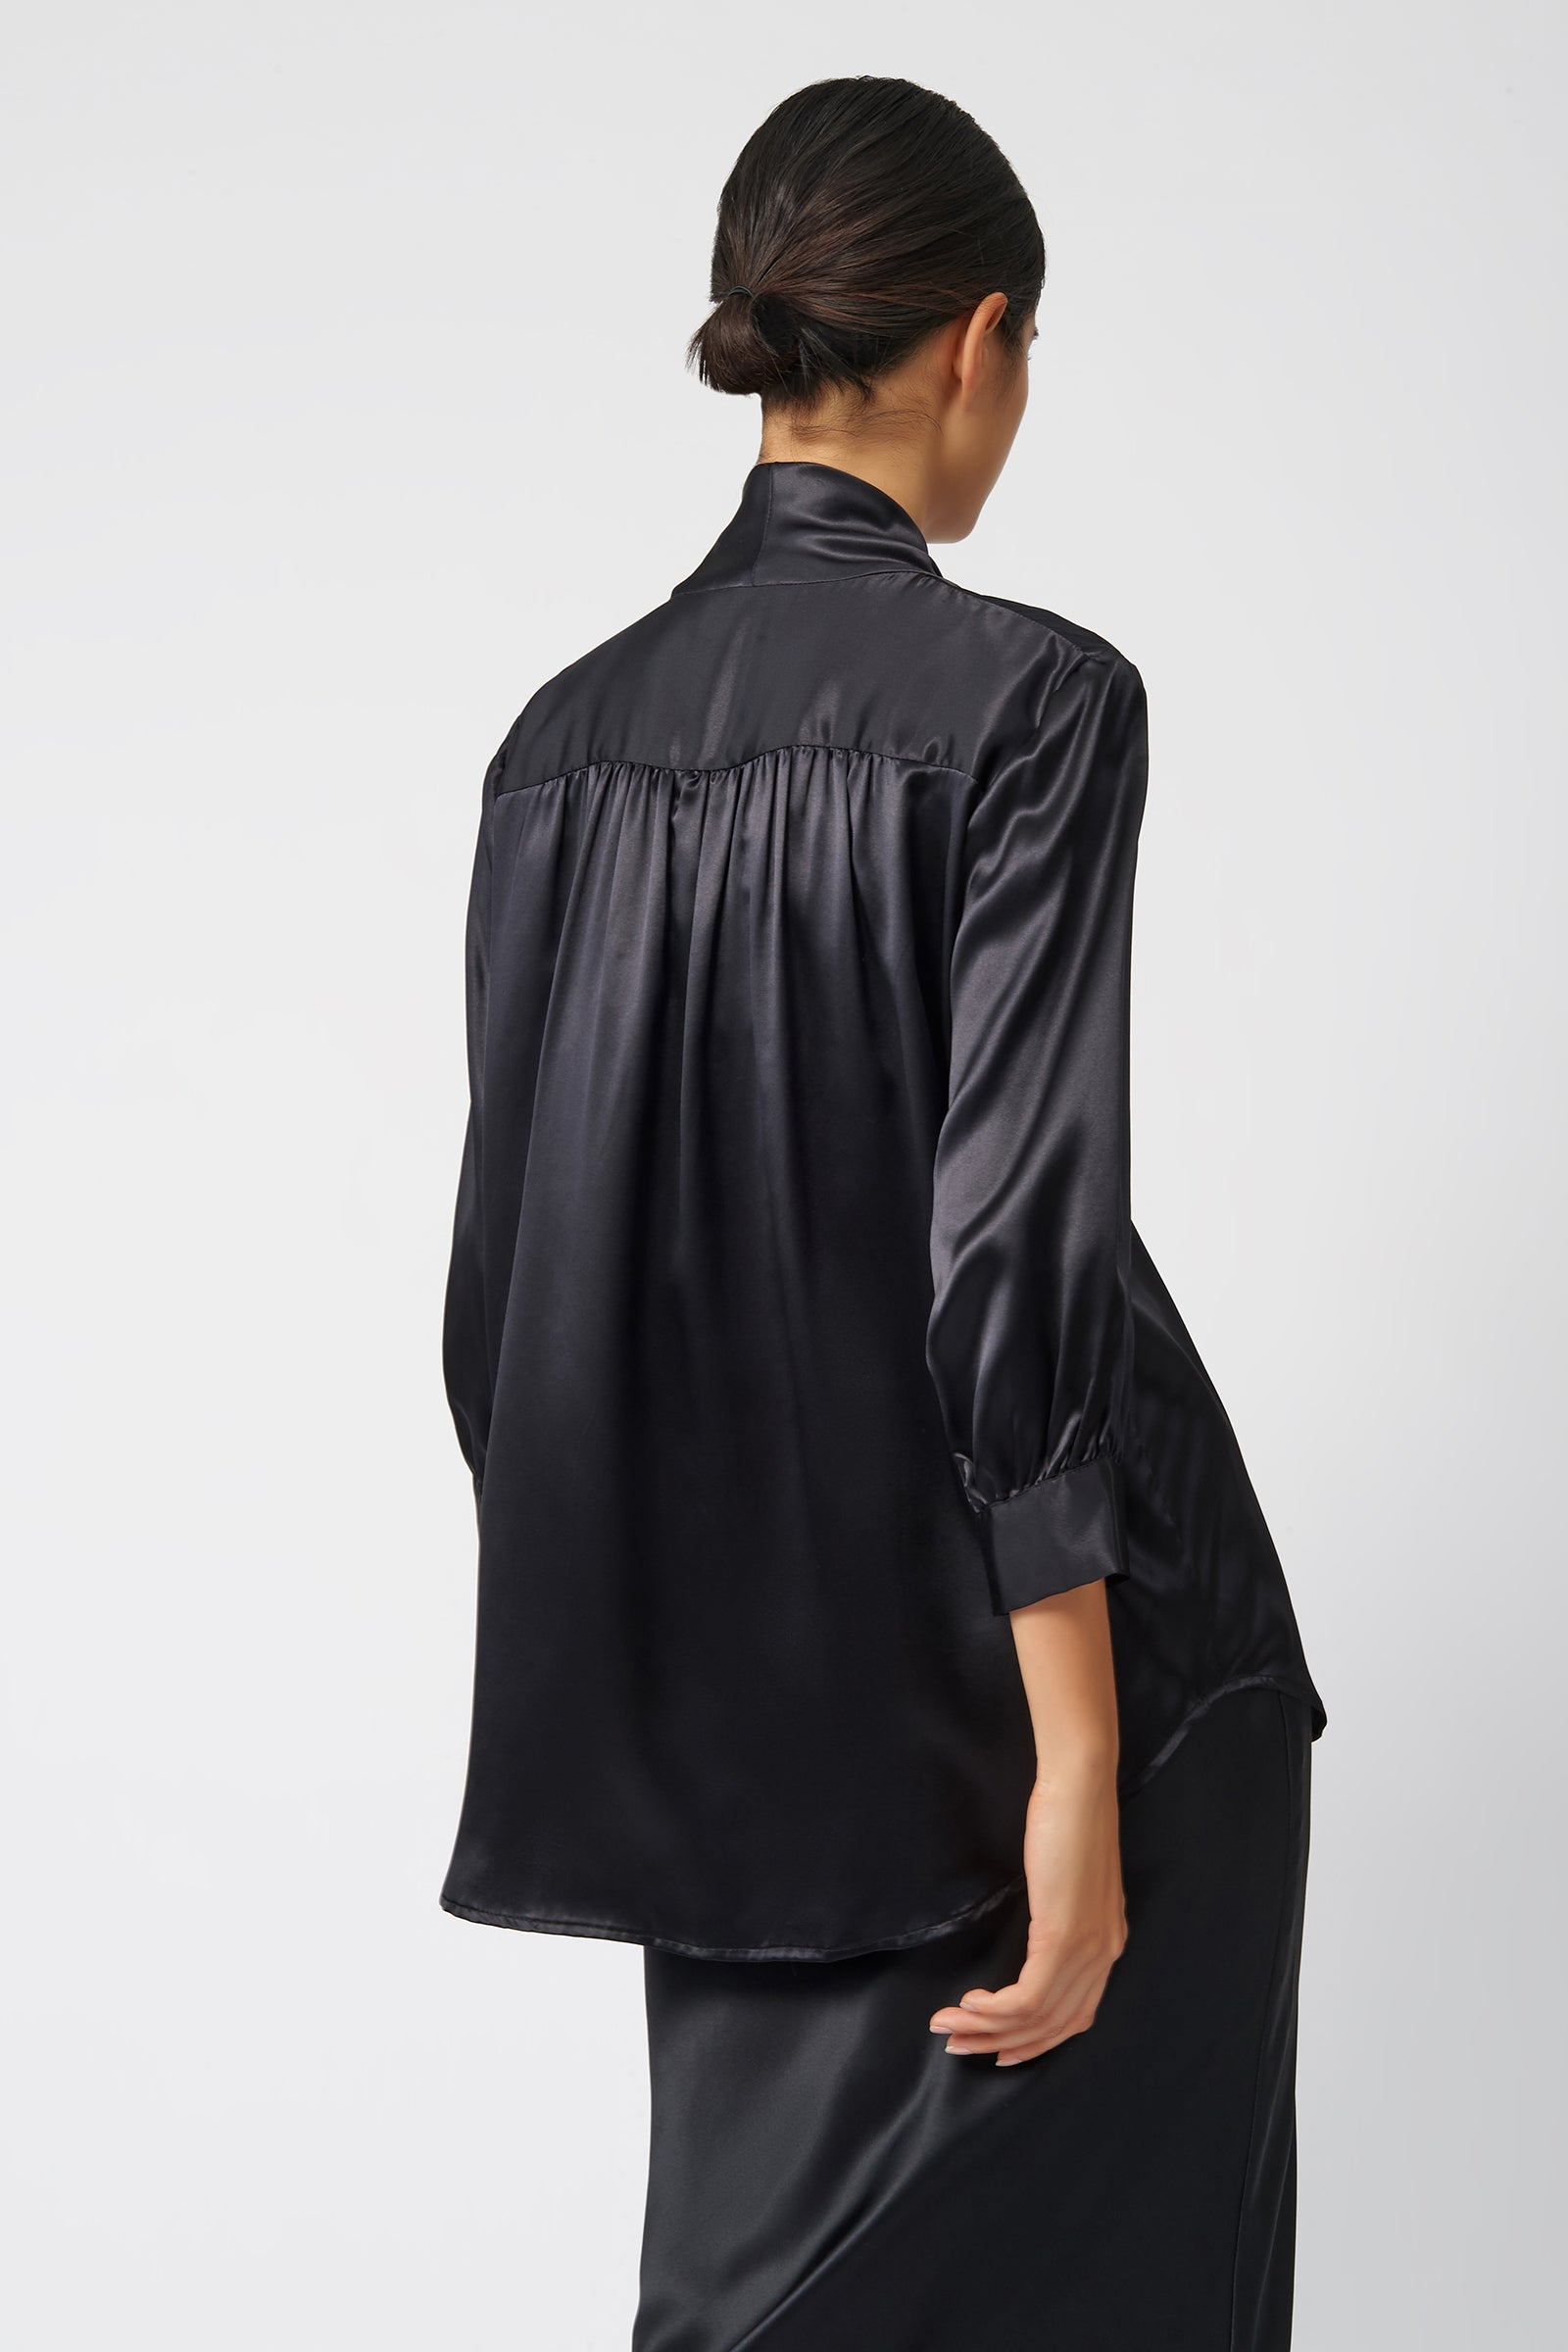 Kal RIeman Cowl Neck 3/4 Sleeve in Black on Model Back View